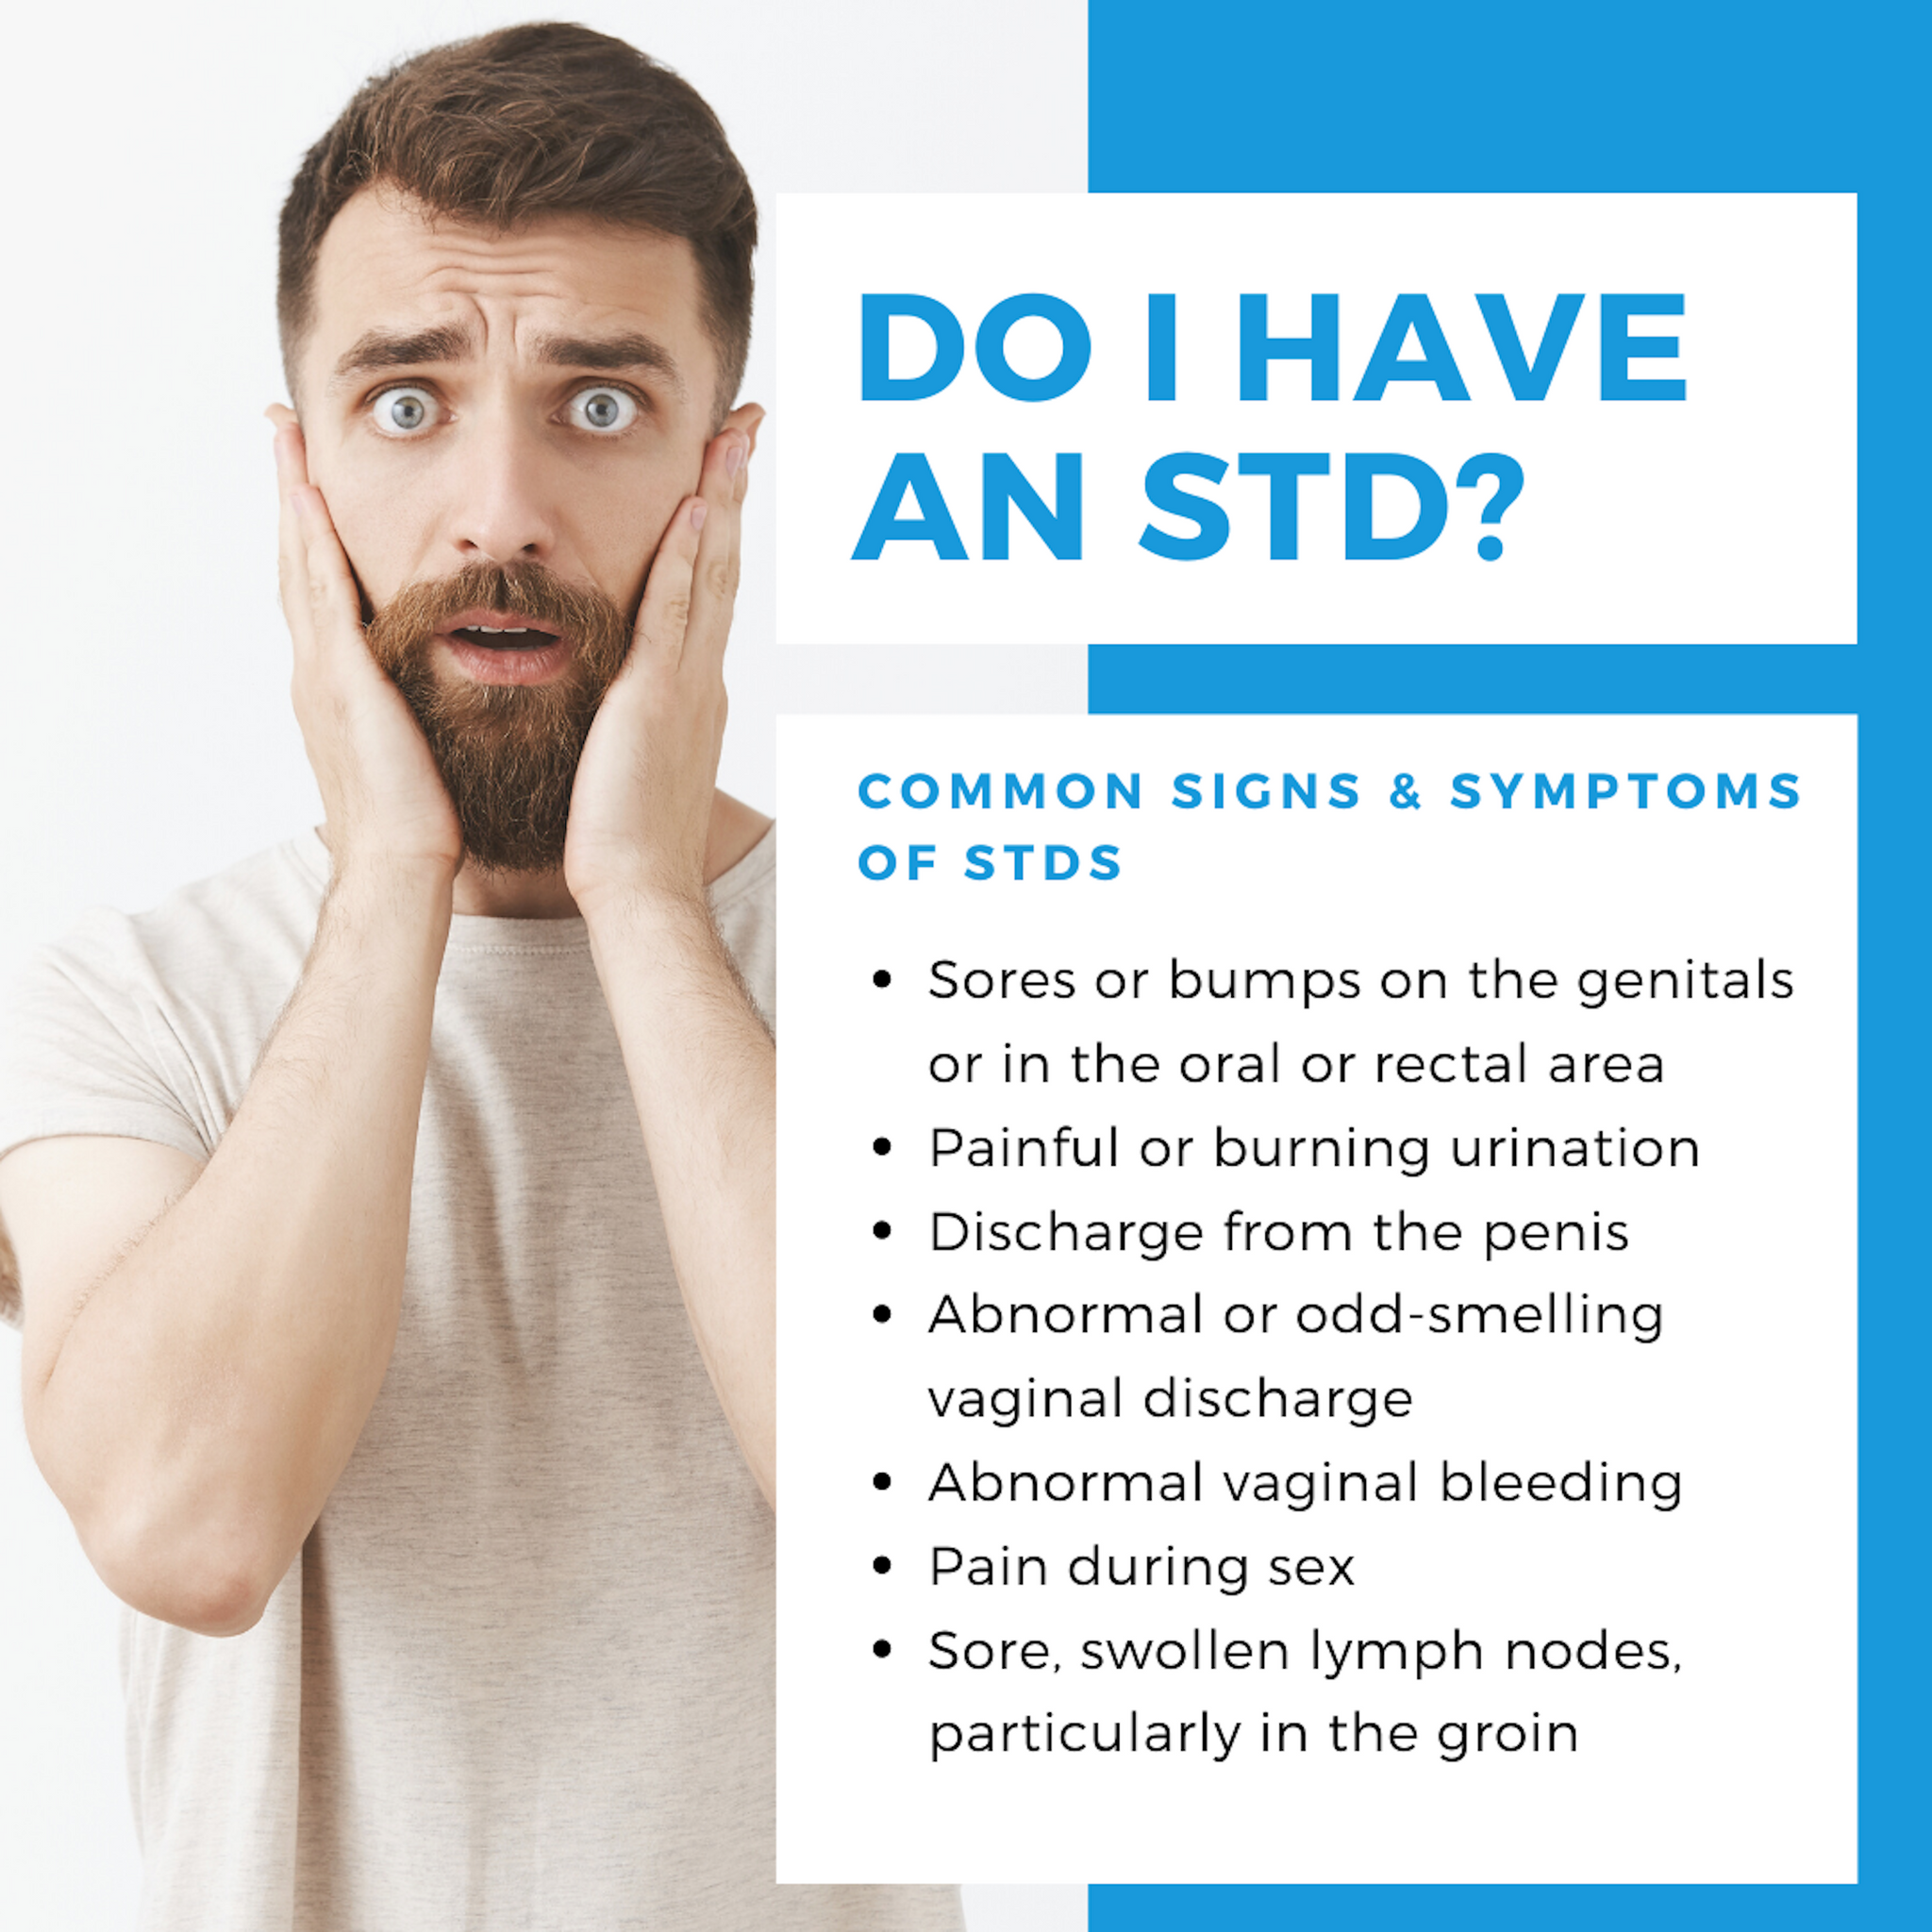 STD Signs & Symptoms